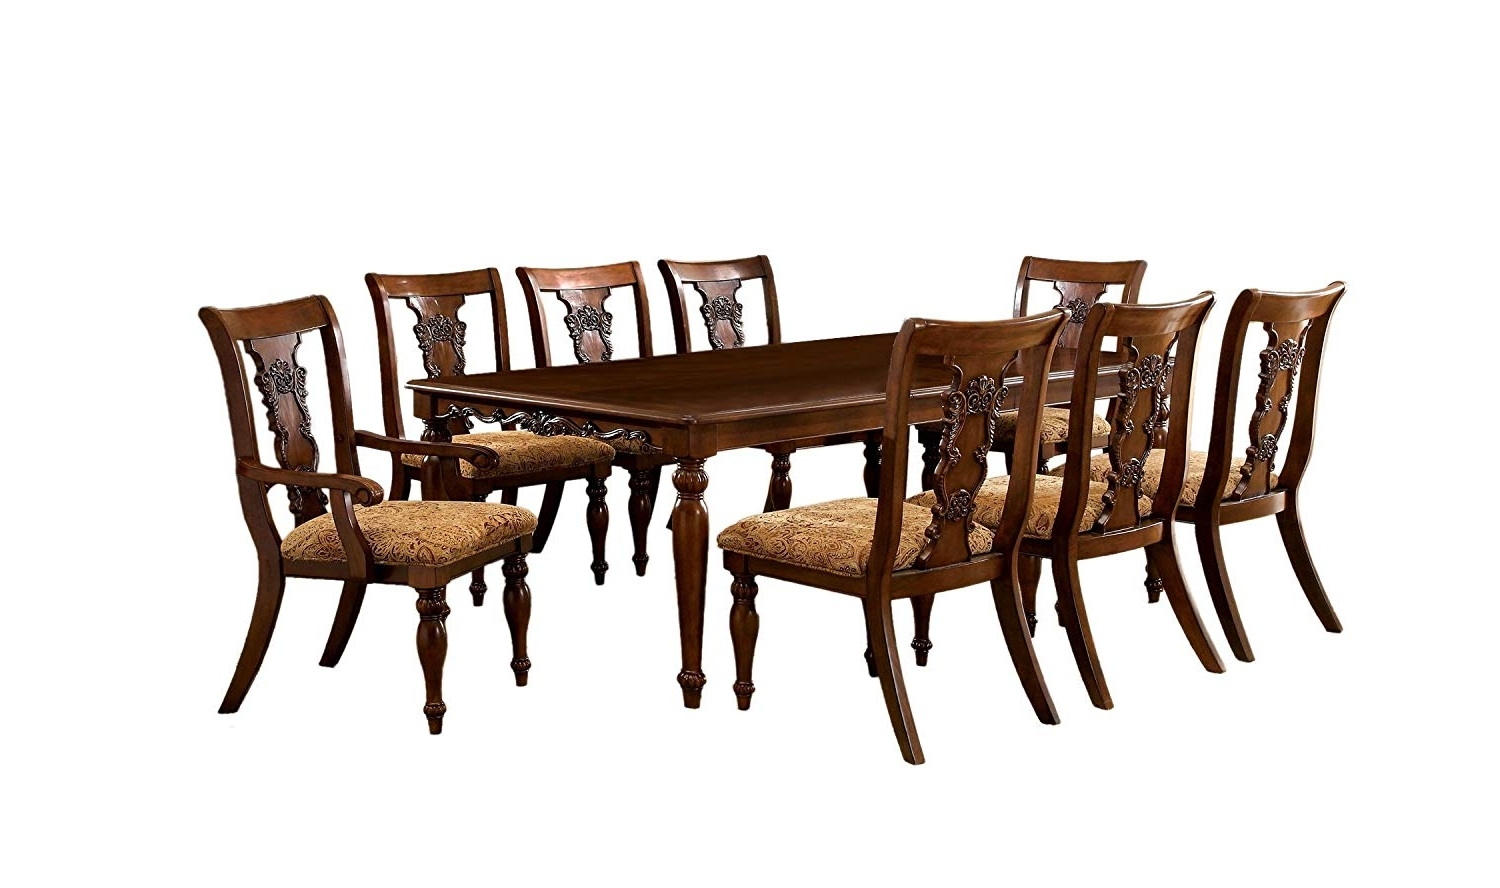 Recent Caira 7 Piece Rectangular Dining Sets With Upholstered Side Chairs with Amazon - Furniture Of America Voltaire 9-Piece Formal Dining